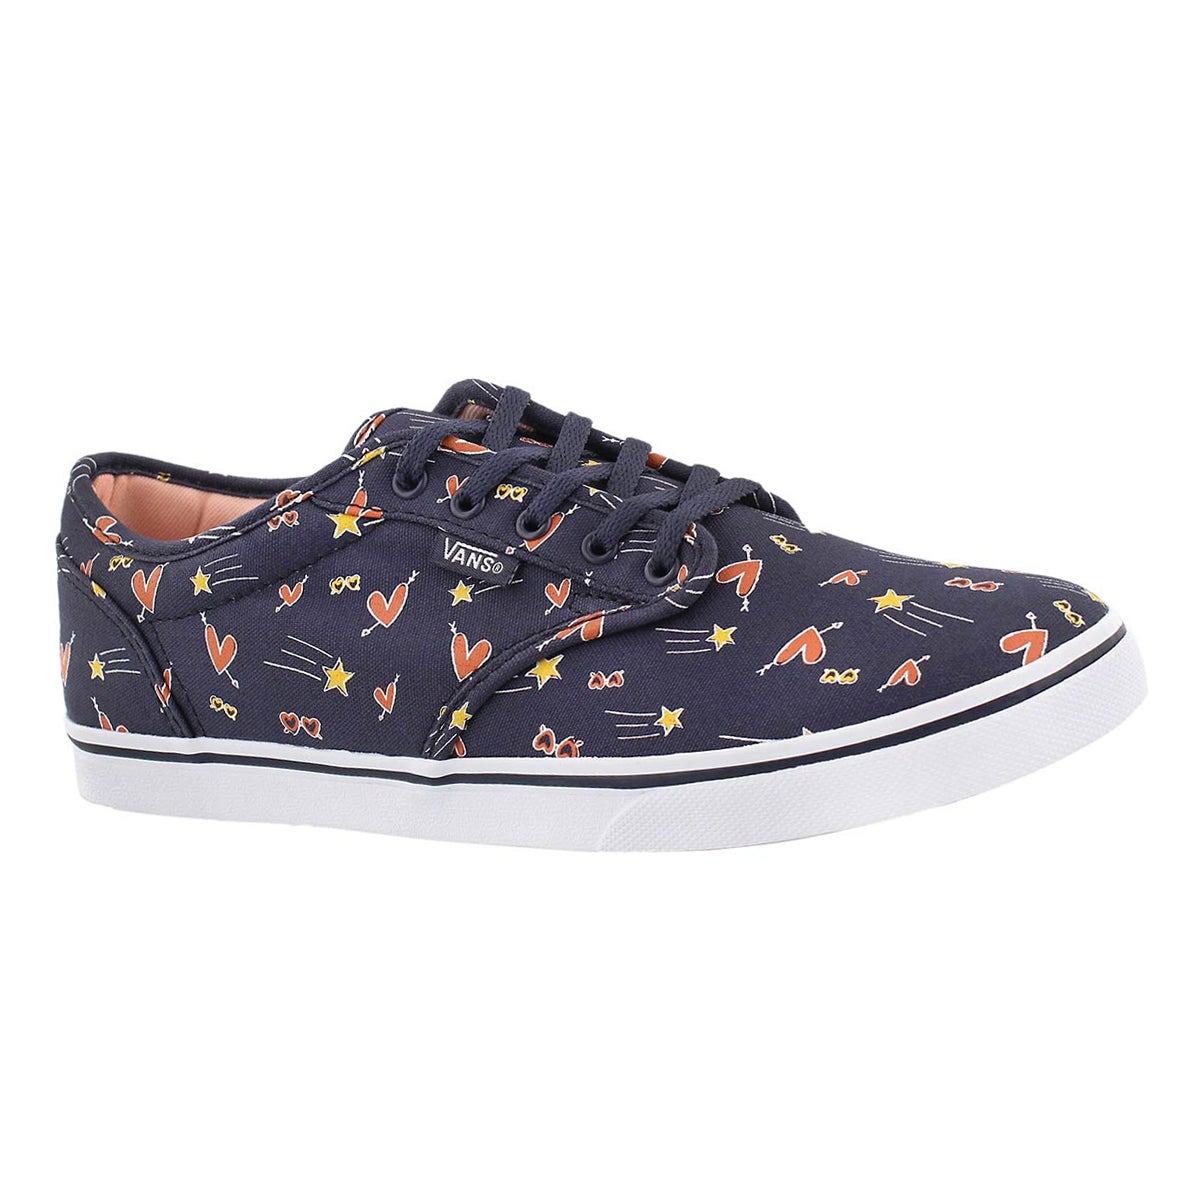 Women's ATWOOD LOW navy/multi lace up sneakers